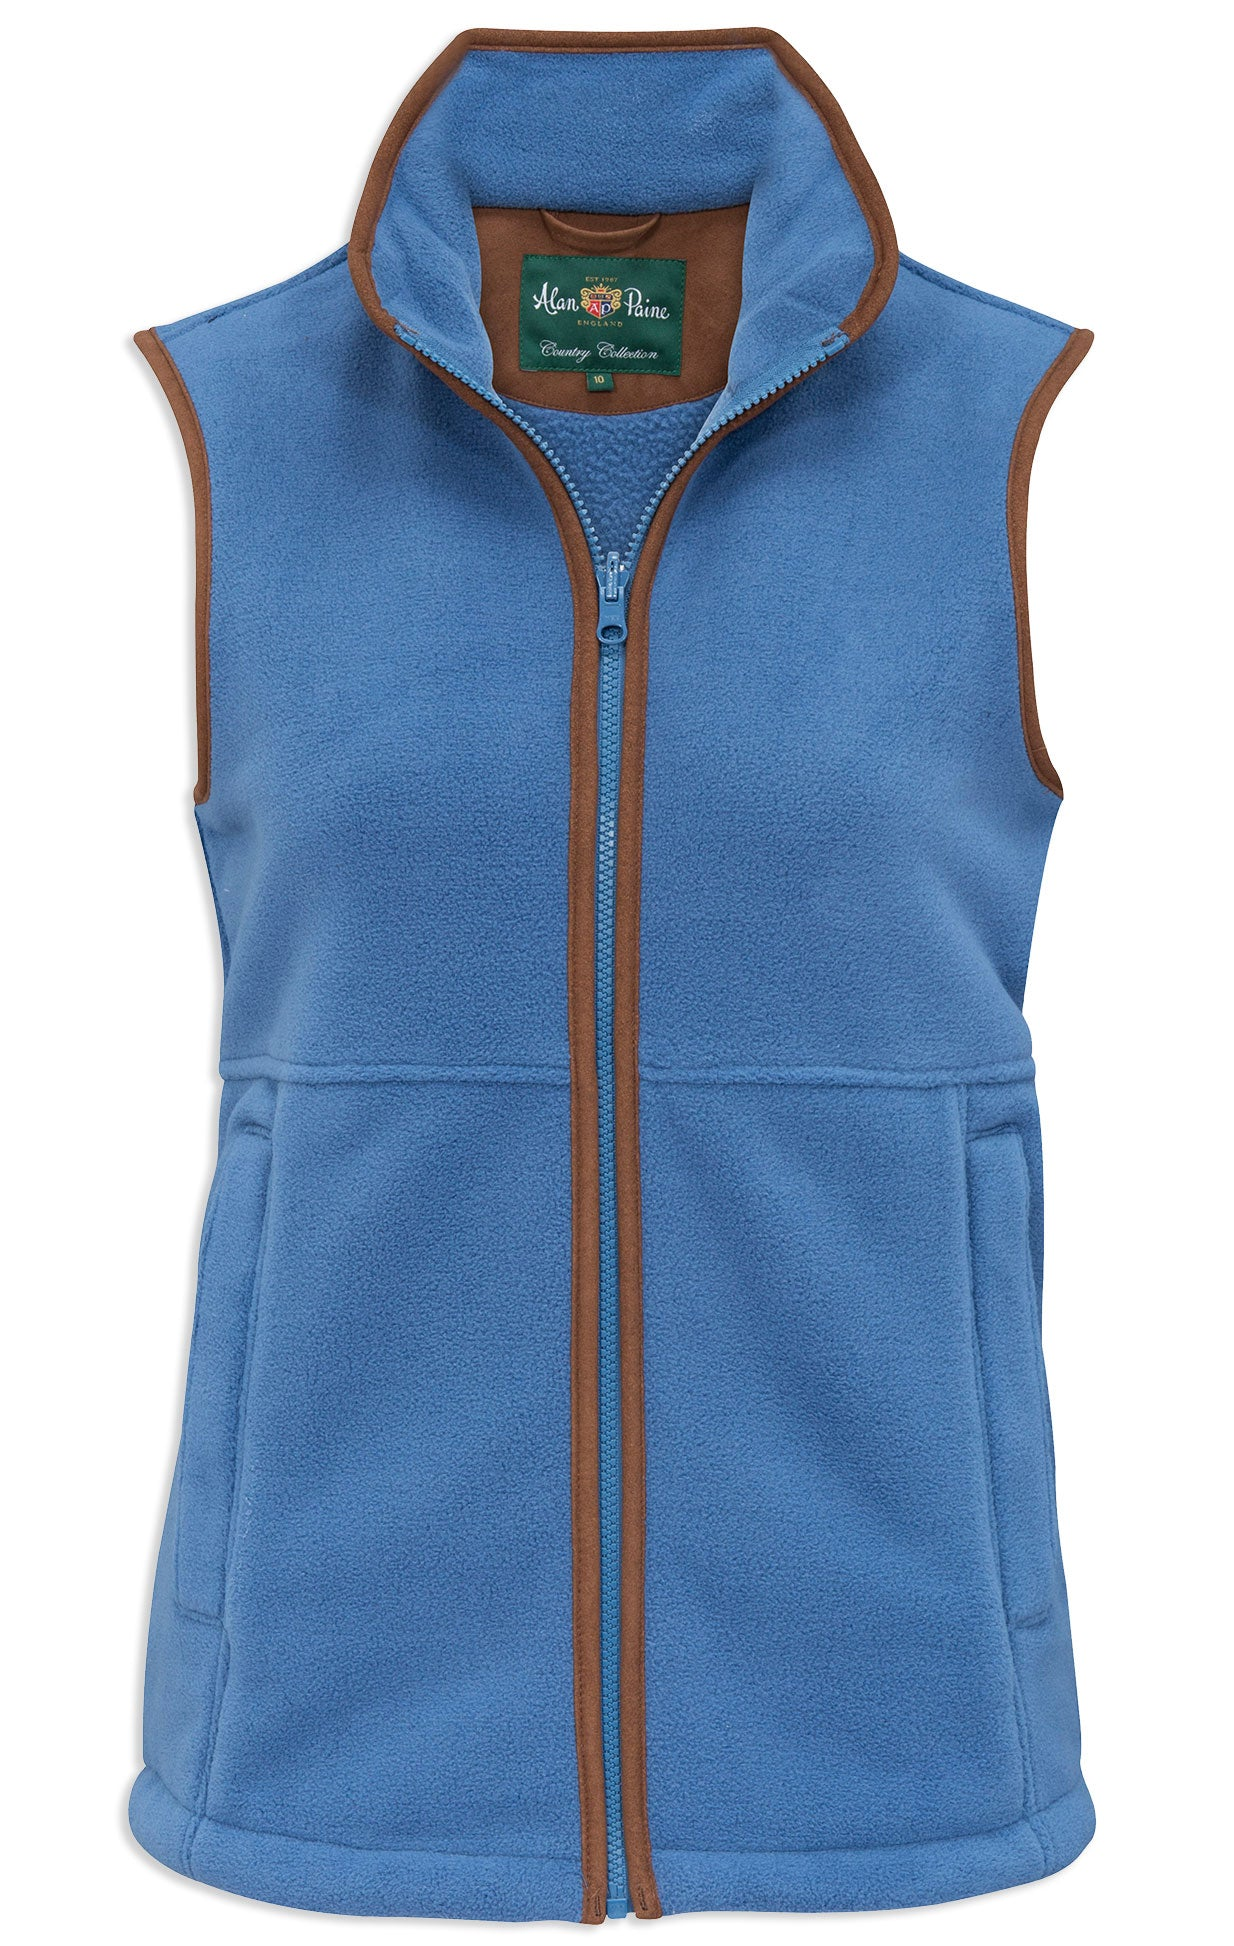 Alan Paine Aylsham Fleece Gilet | Jean